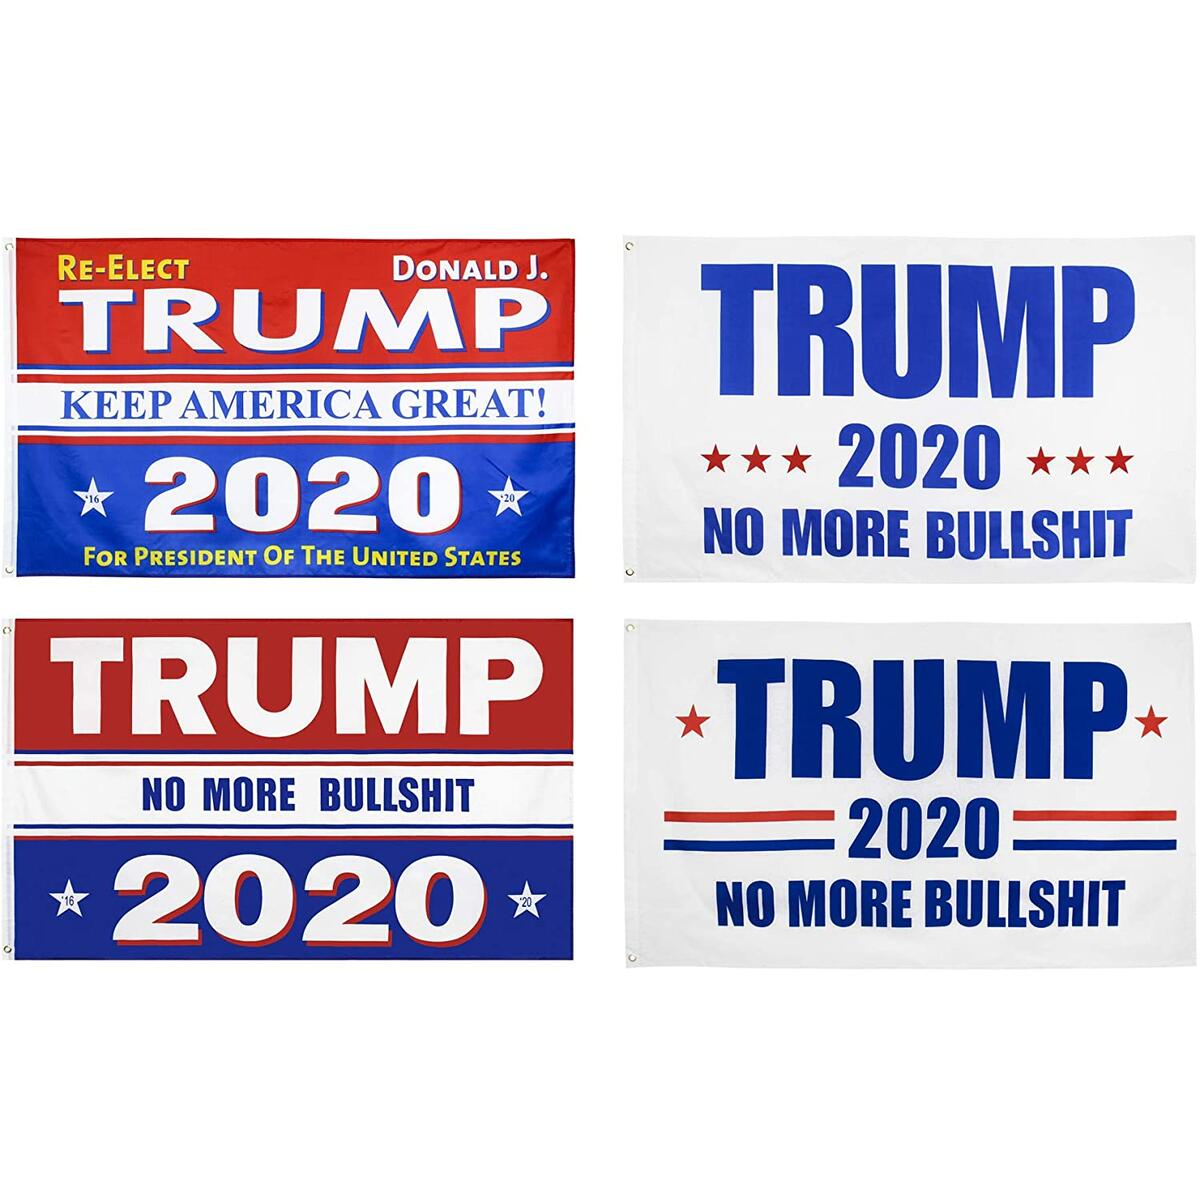 KENPMA 4 Pieces 3x5 Feet Donald Trump for President 2020 Re-Elect Keep America Great Flag No More Bullshit Flag with Grommets - Printed Polyester - Indoor/Outdoor - Vivid Color - UV Fade Resistant